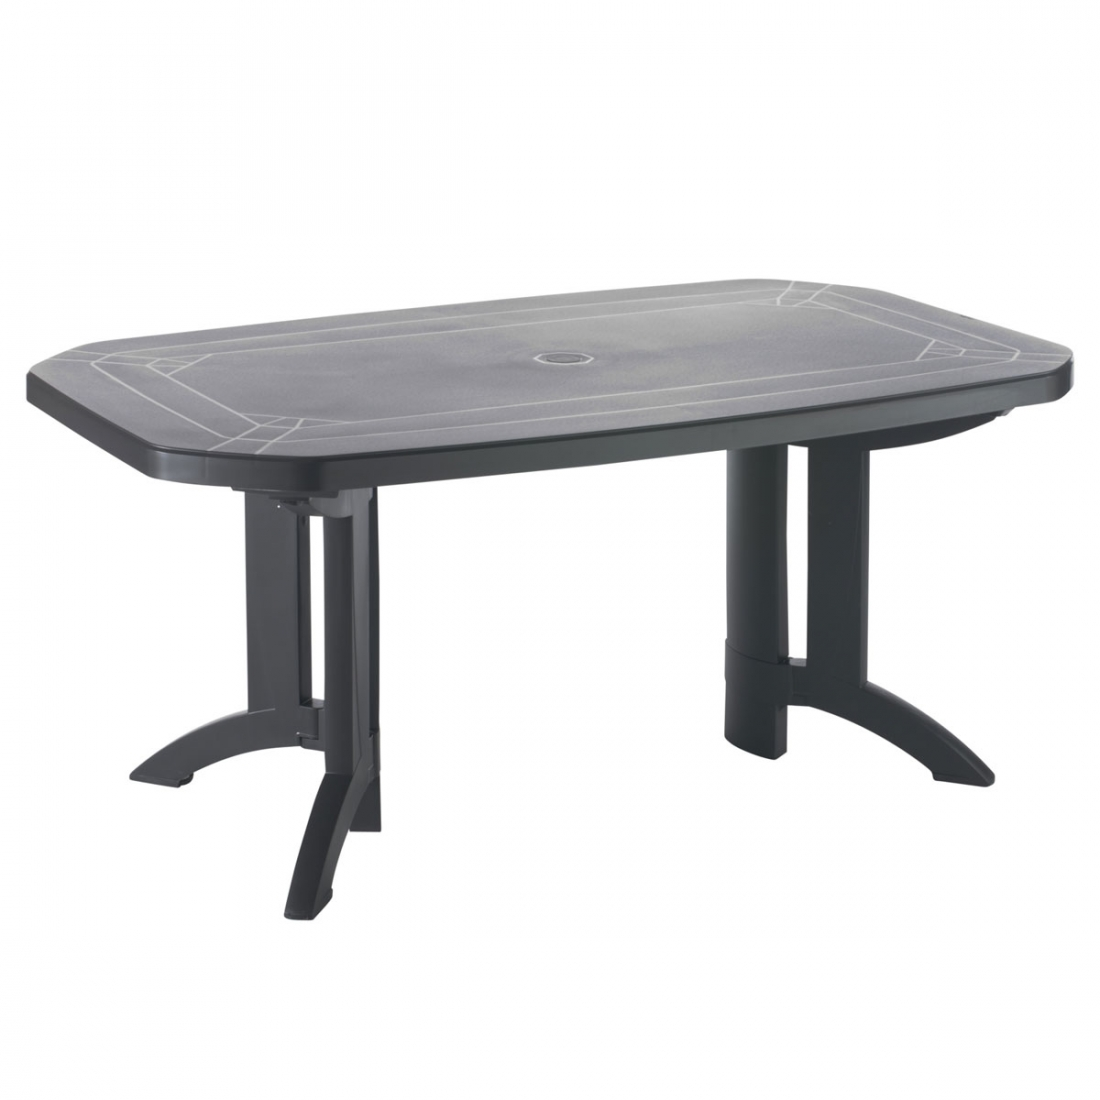 Table de jardin vega 165x100 grosfillex zendart design - Table de jardin design italien ...